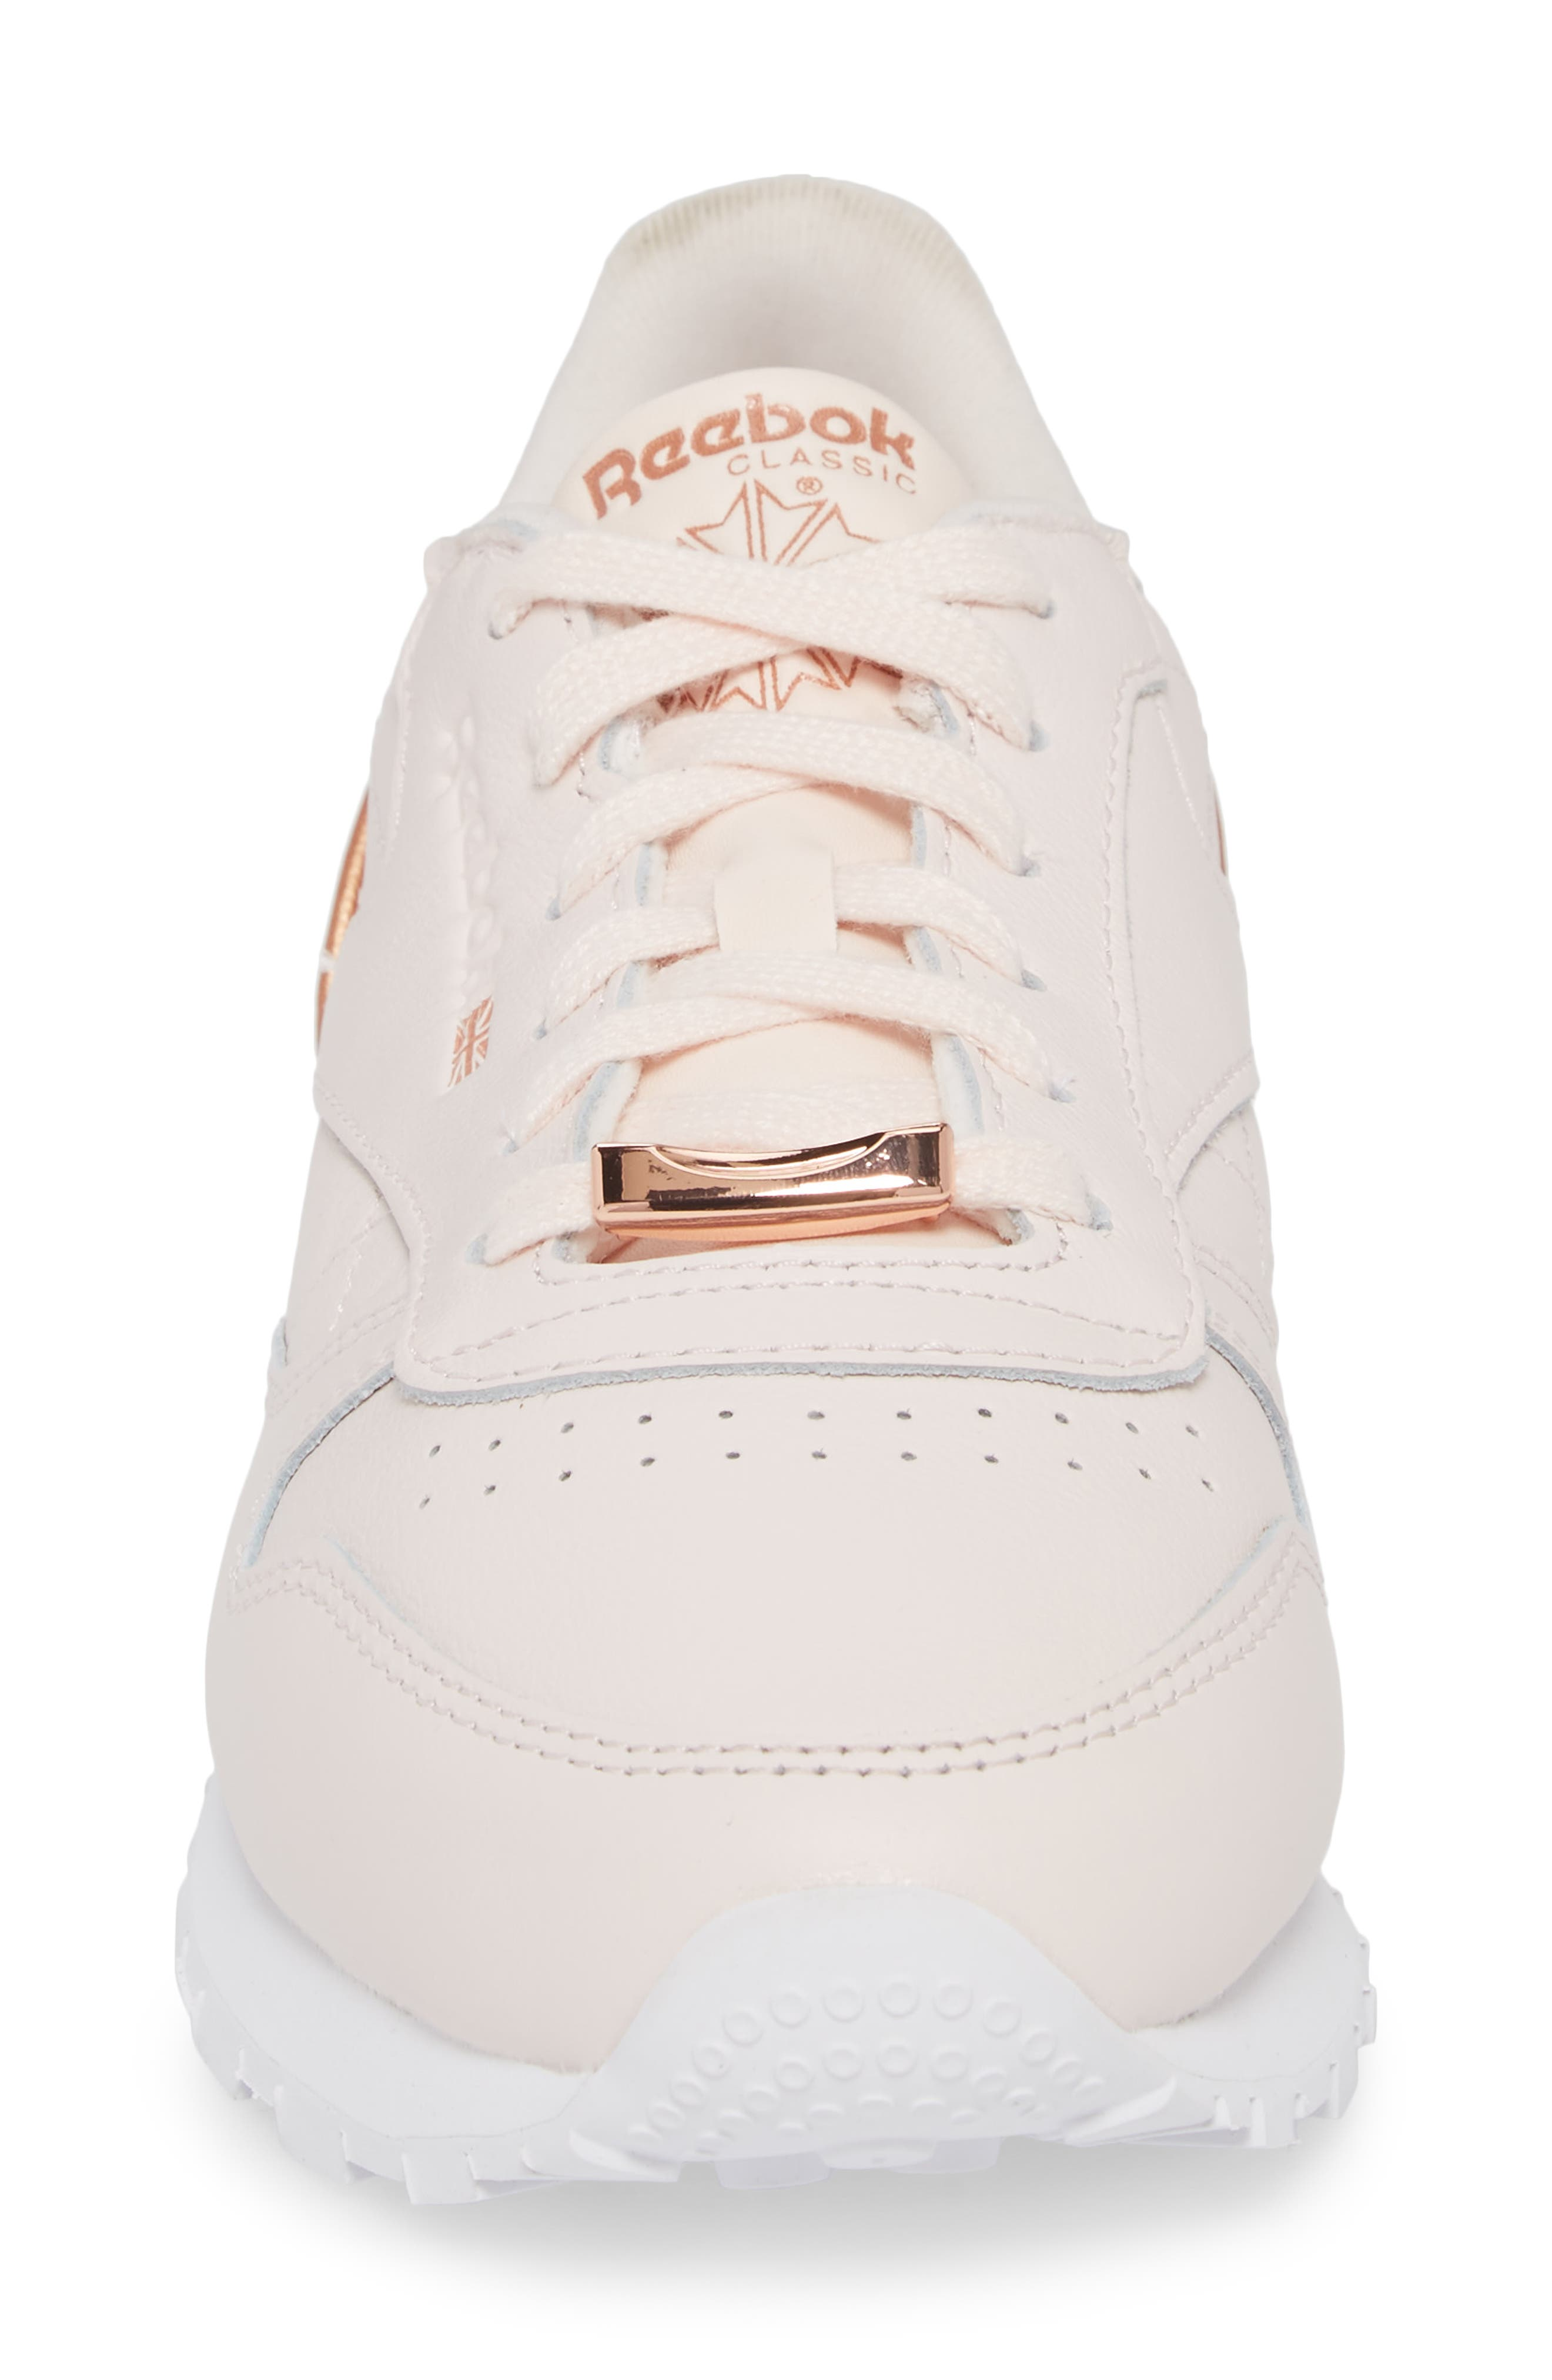 Classic Leather HW Sneaker,                             Alternate thumbnail 4, color,                             Pale Pink/ White/ Rose Gold